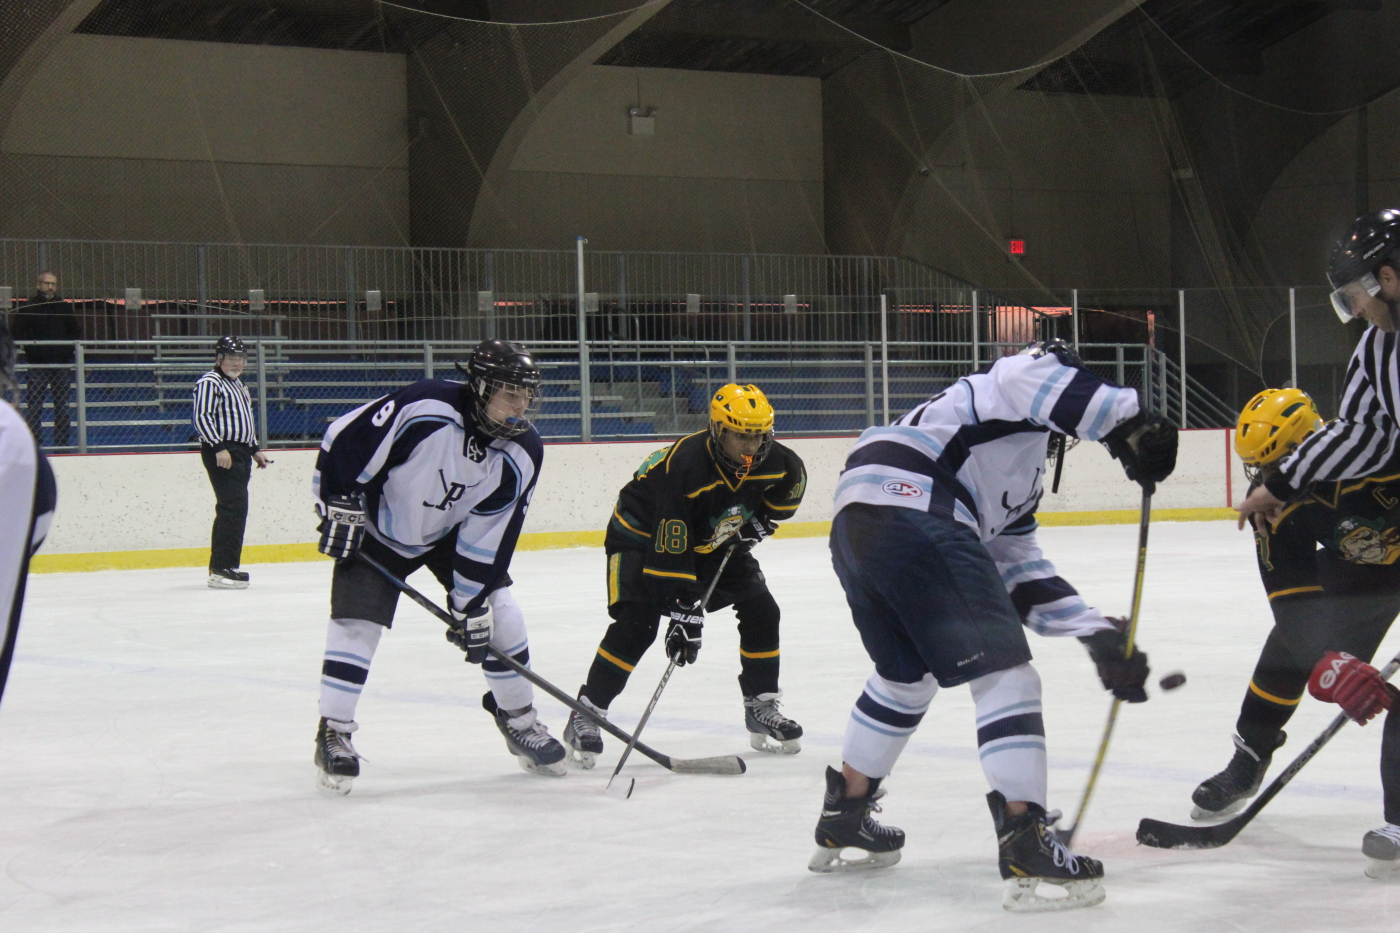 Brendan McCormick '17 faces off against Nottingham on December 3 at Mercer County Park. Photo: Julia Ward